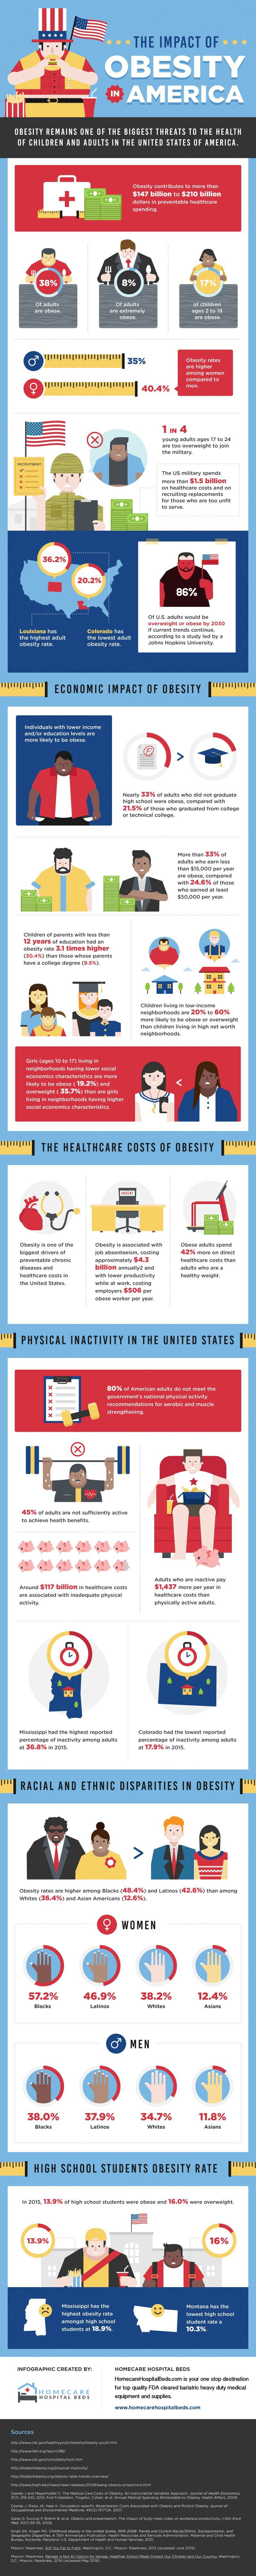 america is filled with obesity  infographic  sculpture  pinterest  america is filled with obesity  infographic for your health health and  wellbeing essay